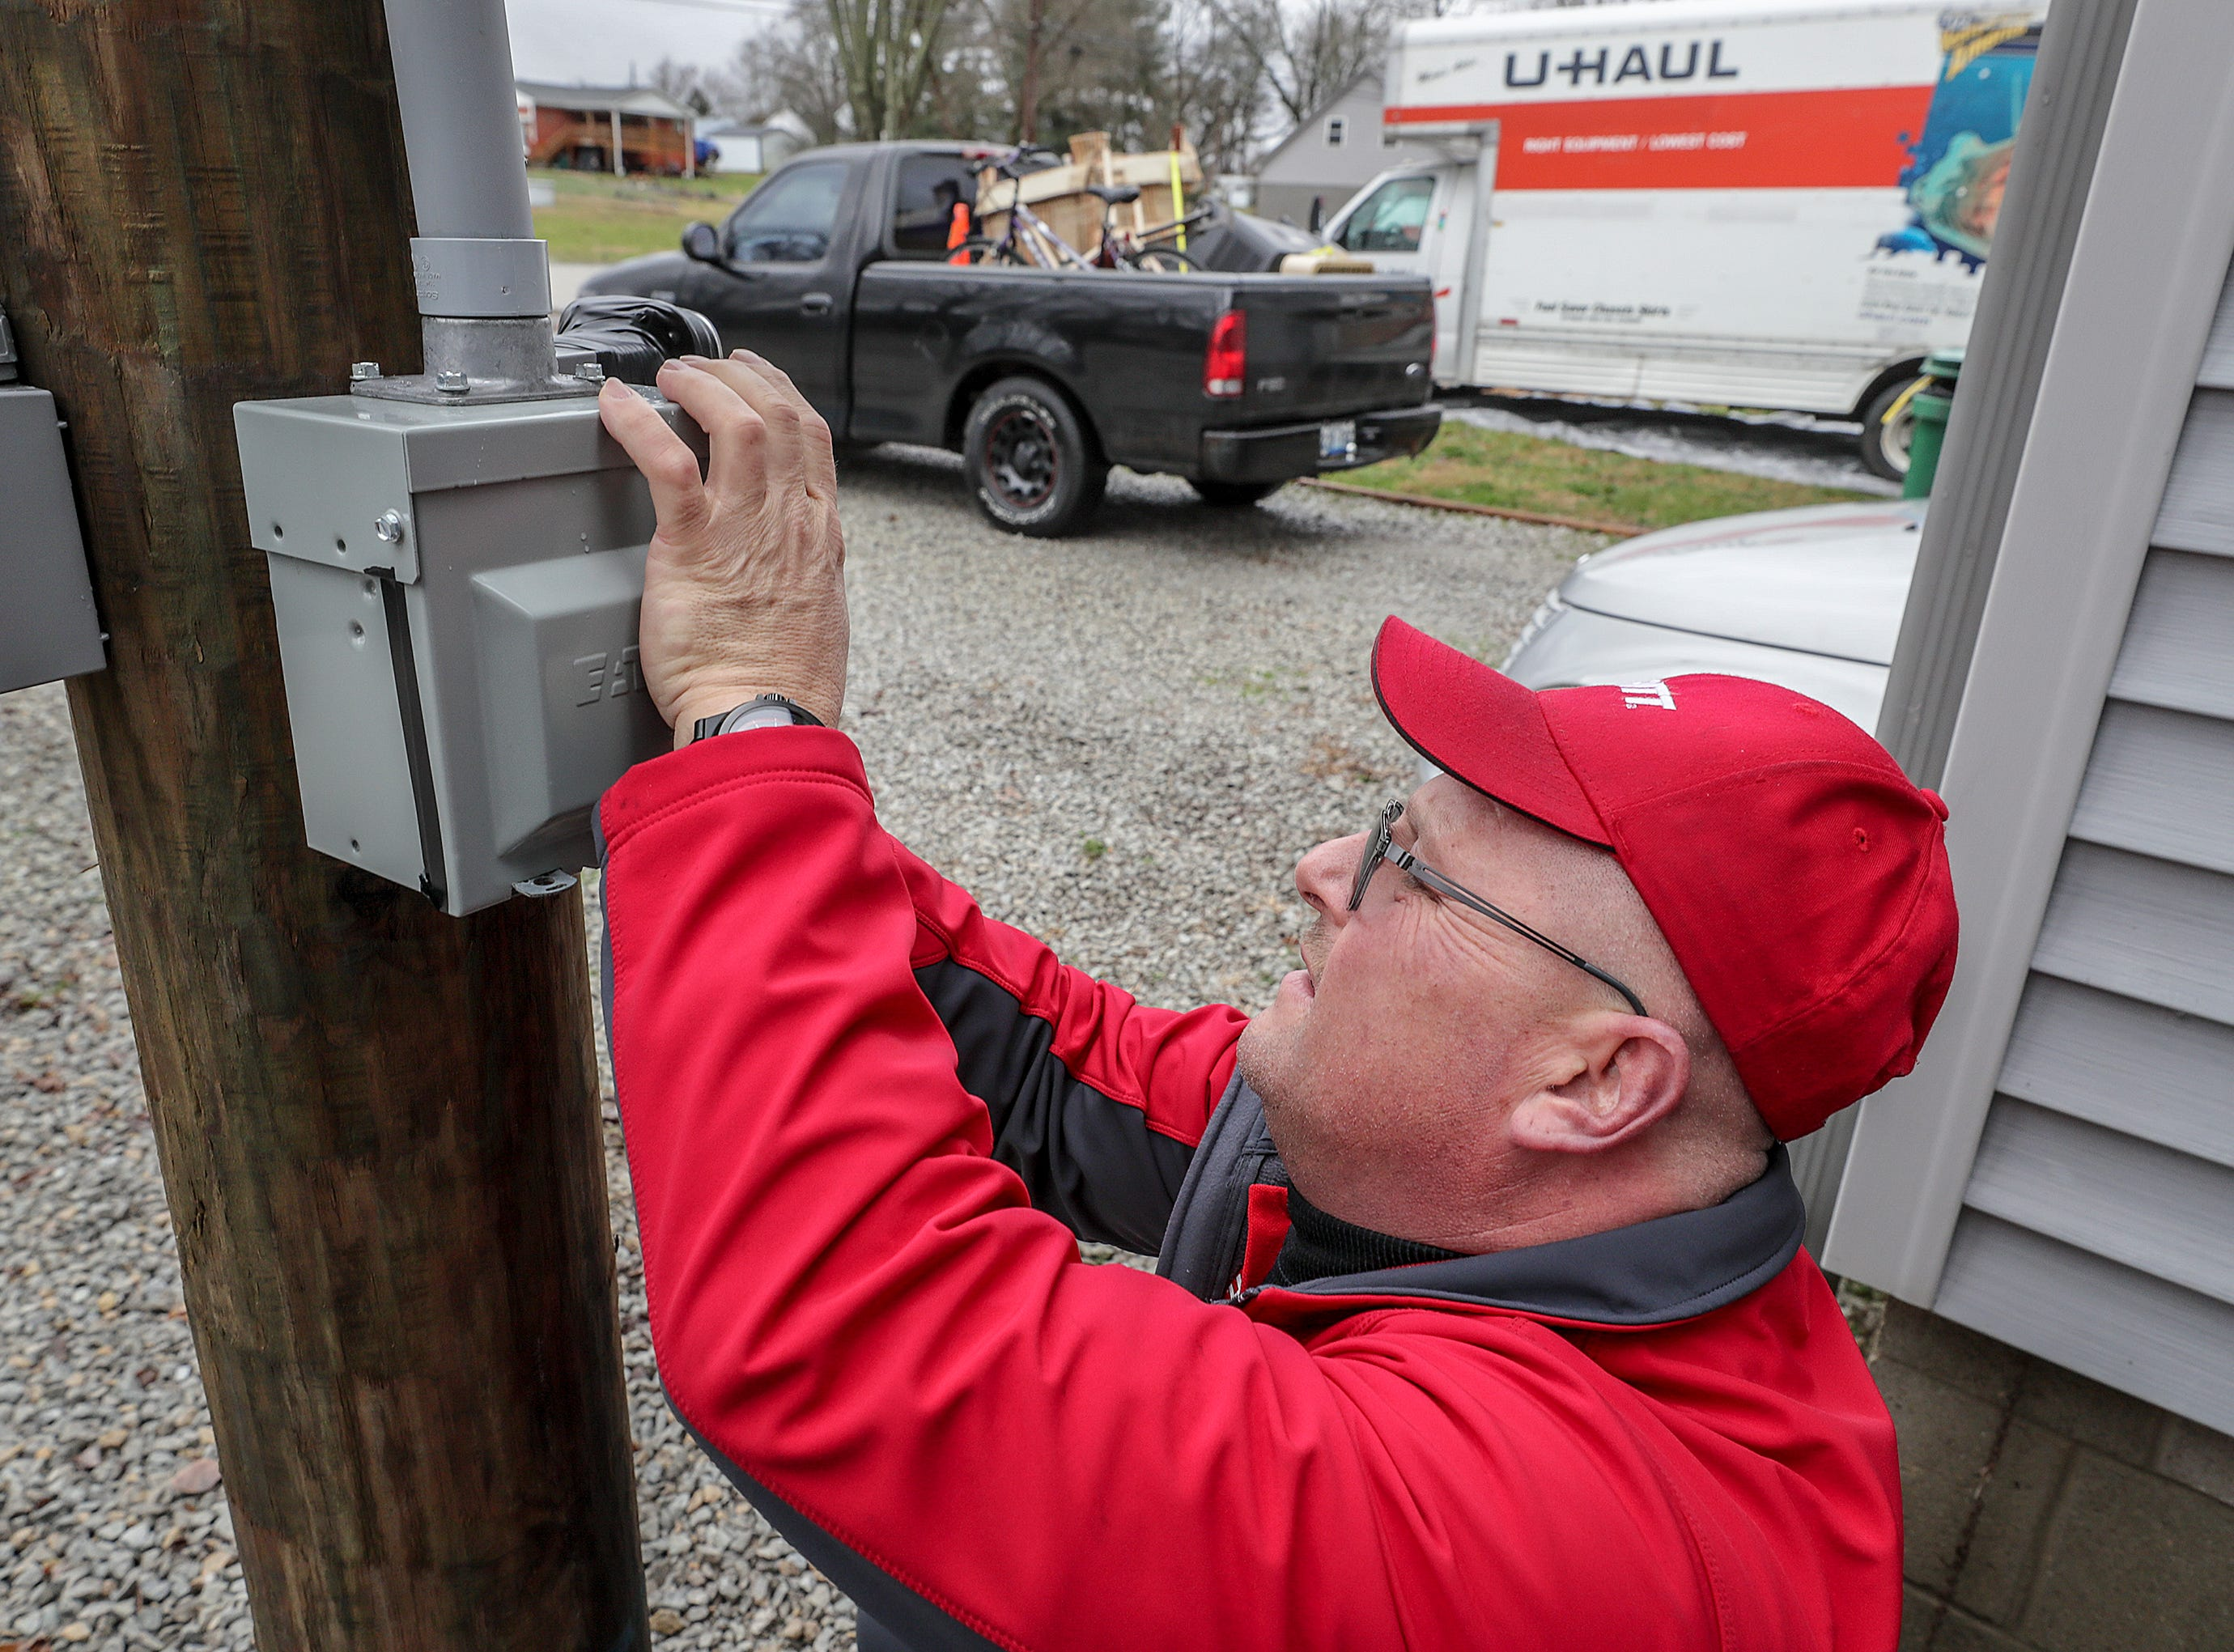 West Point resident Norman Madden tapes electrical boxes to keep river water out as his neighbors prepare to leave their home along the Ohio River in advance of flooding along the Ohio River.Februar 12, 2019